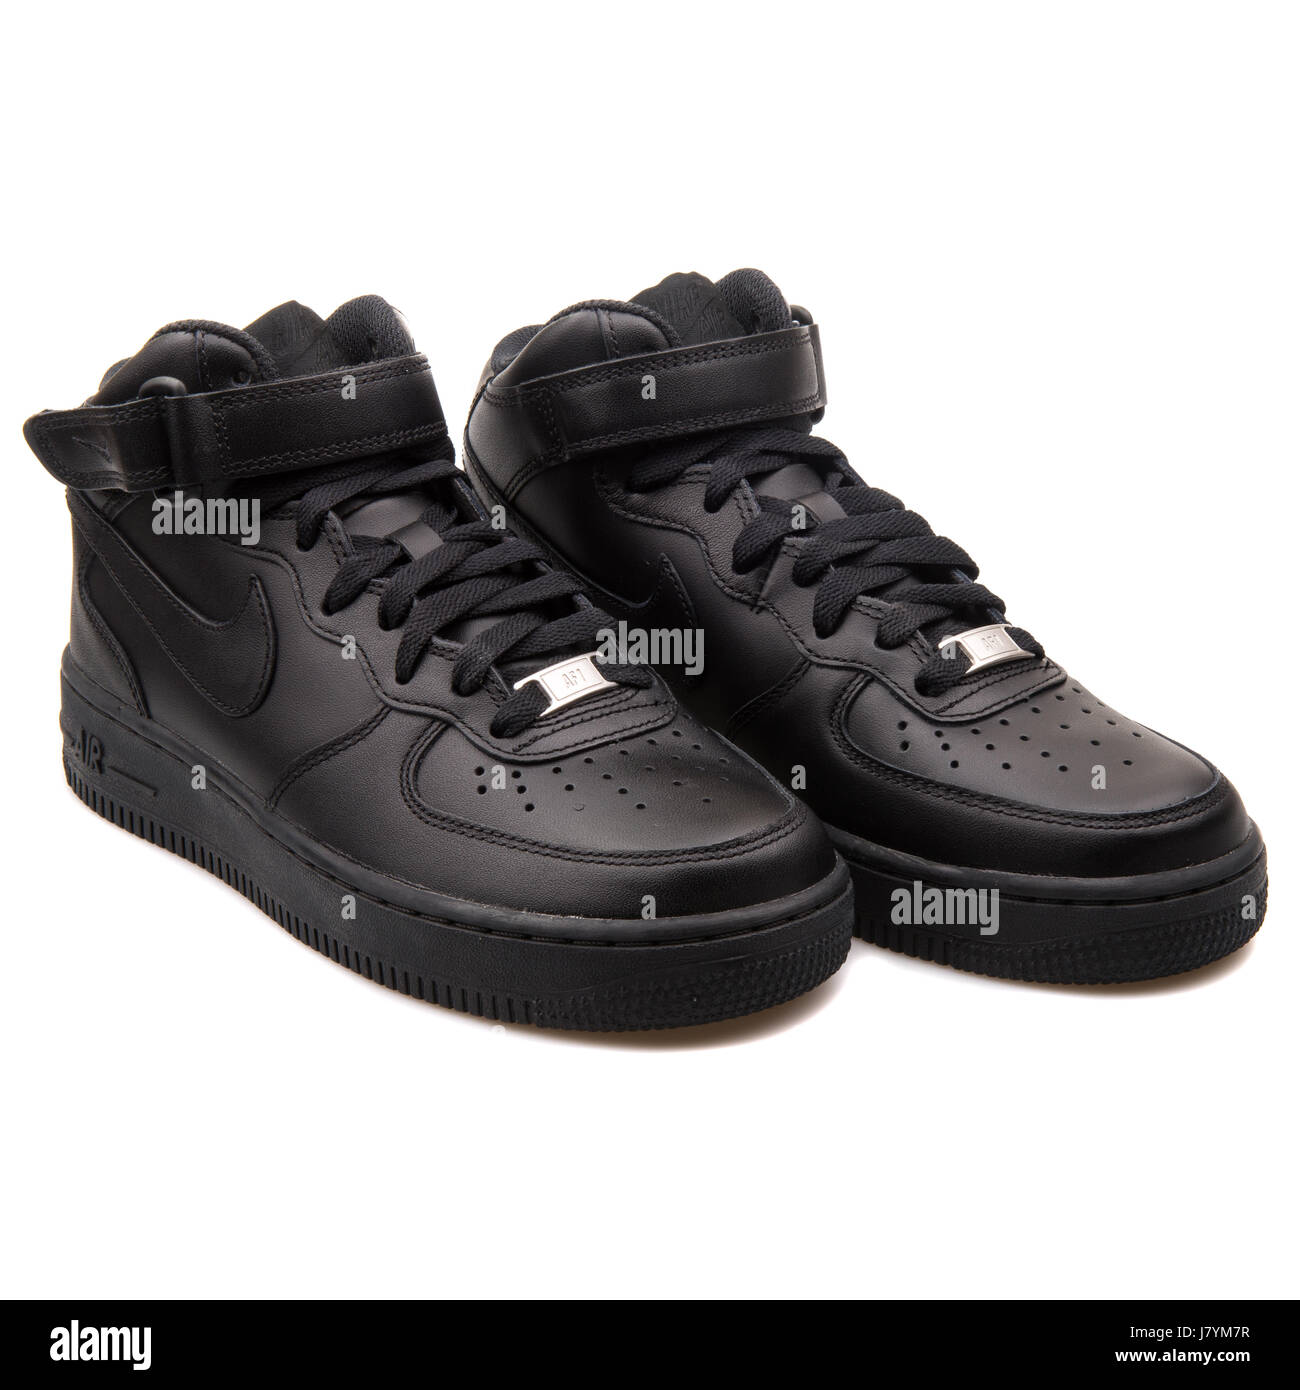 Nike WMNS Air Force 1 Mid  07 LE Black Women s Sports Sneakers - 366731-001 b1c5900d9